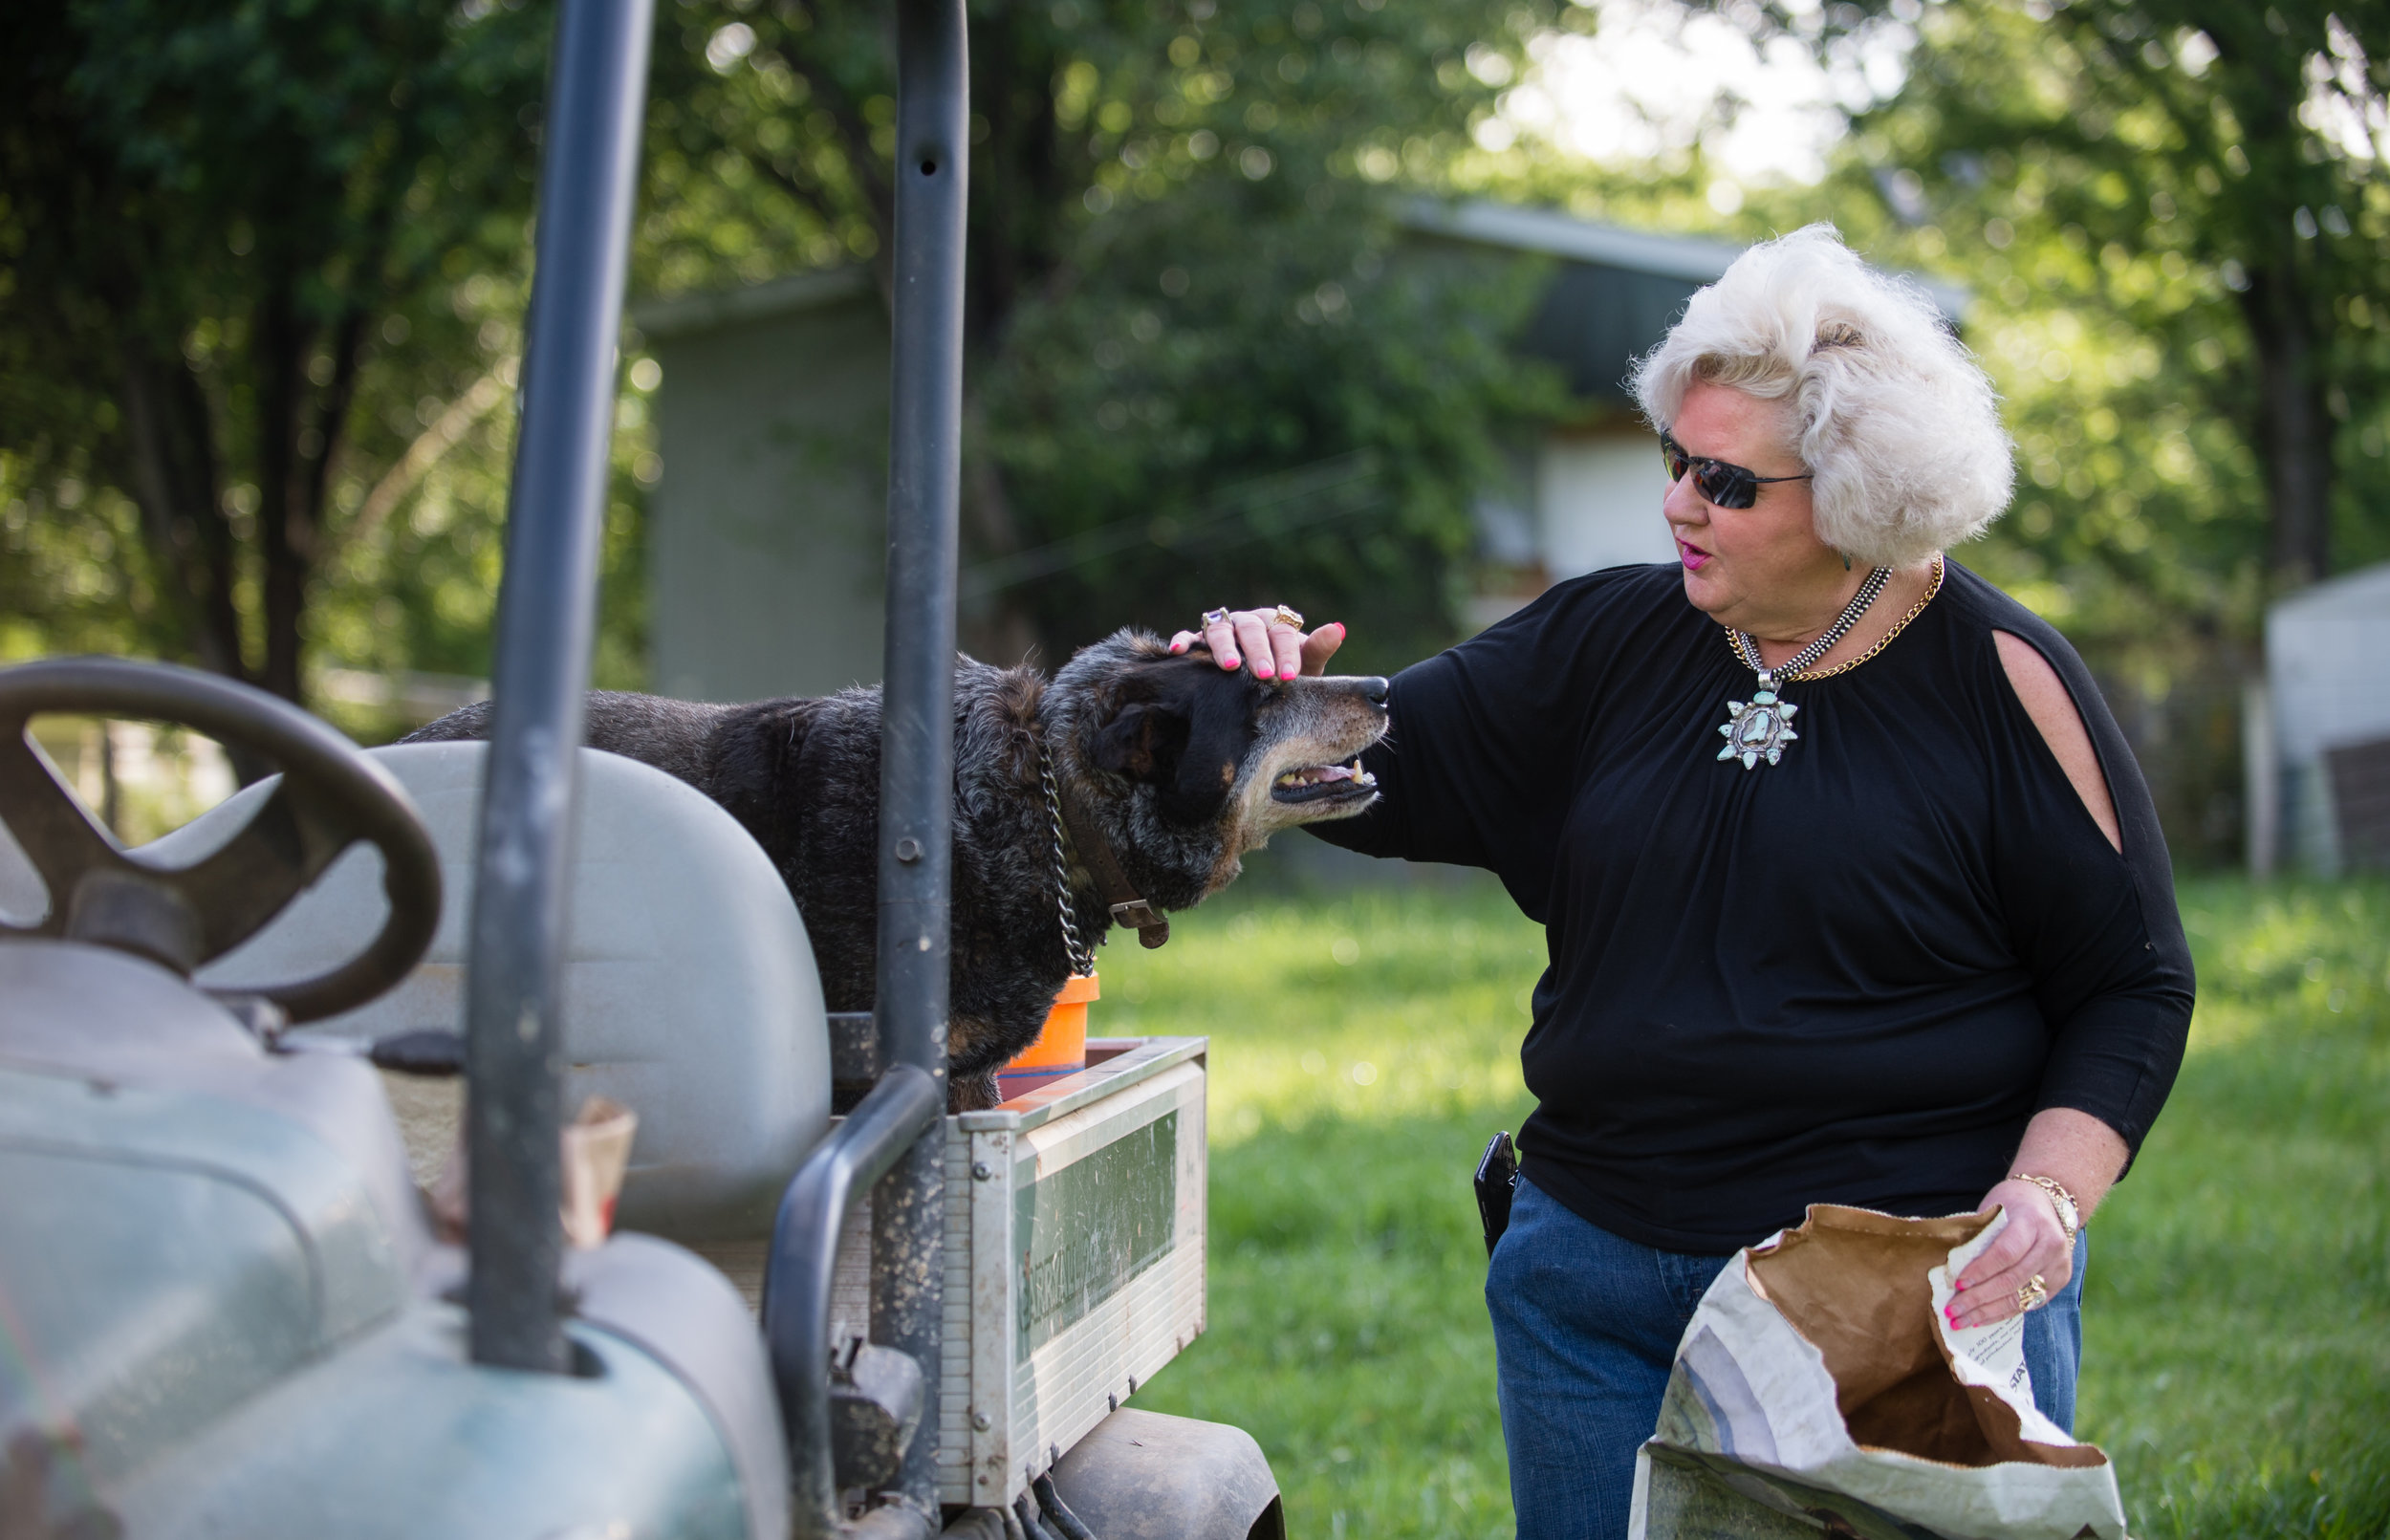 Ann Jones is a equine professional and cattle rancher with property in Georgia and Oklahoma. She's shown here on her farm, Jones Cutting Horses, with her dog Conway in Flowery Branch, Ga. in April 2017.